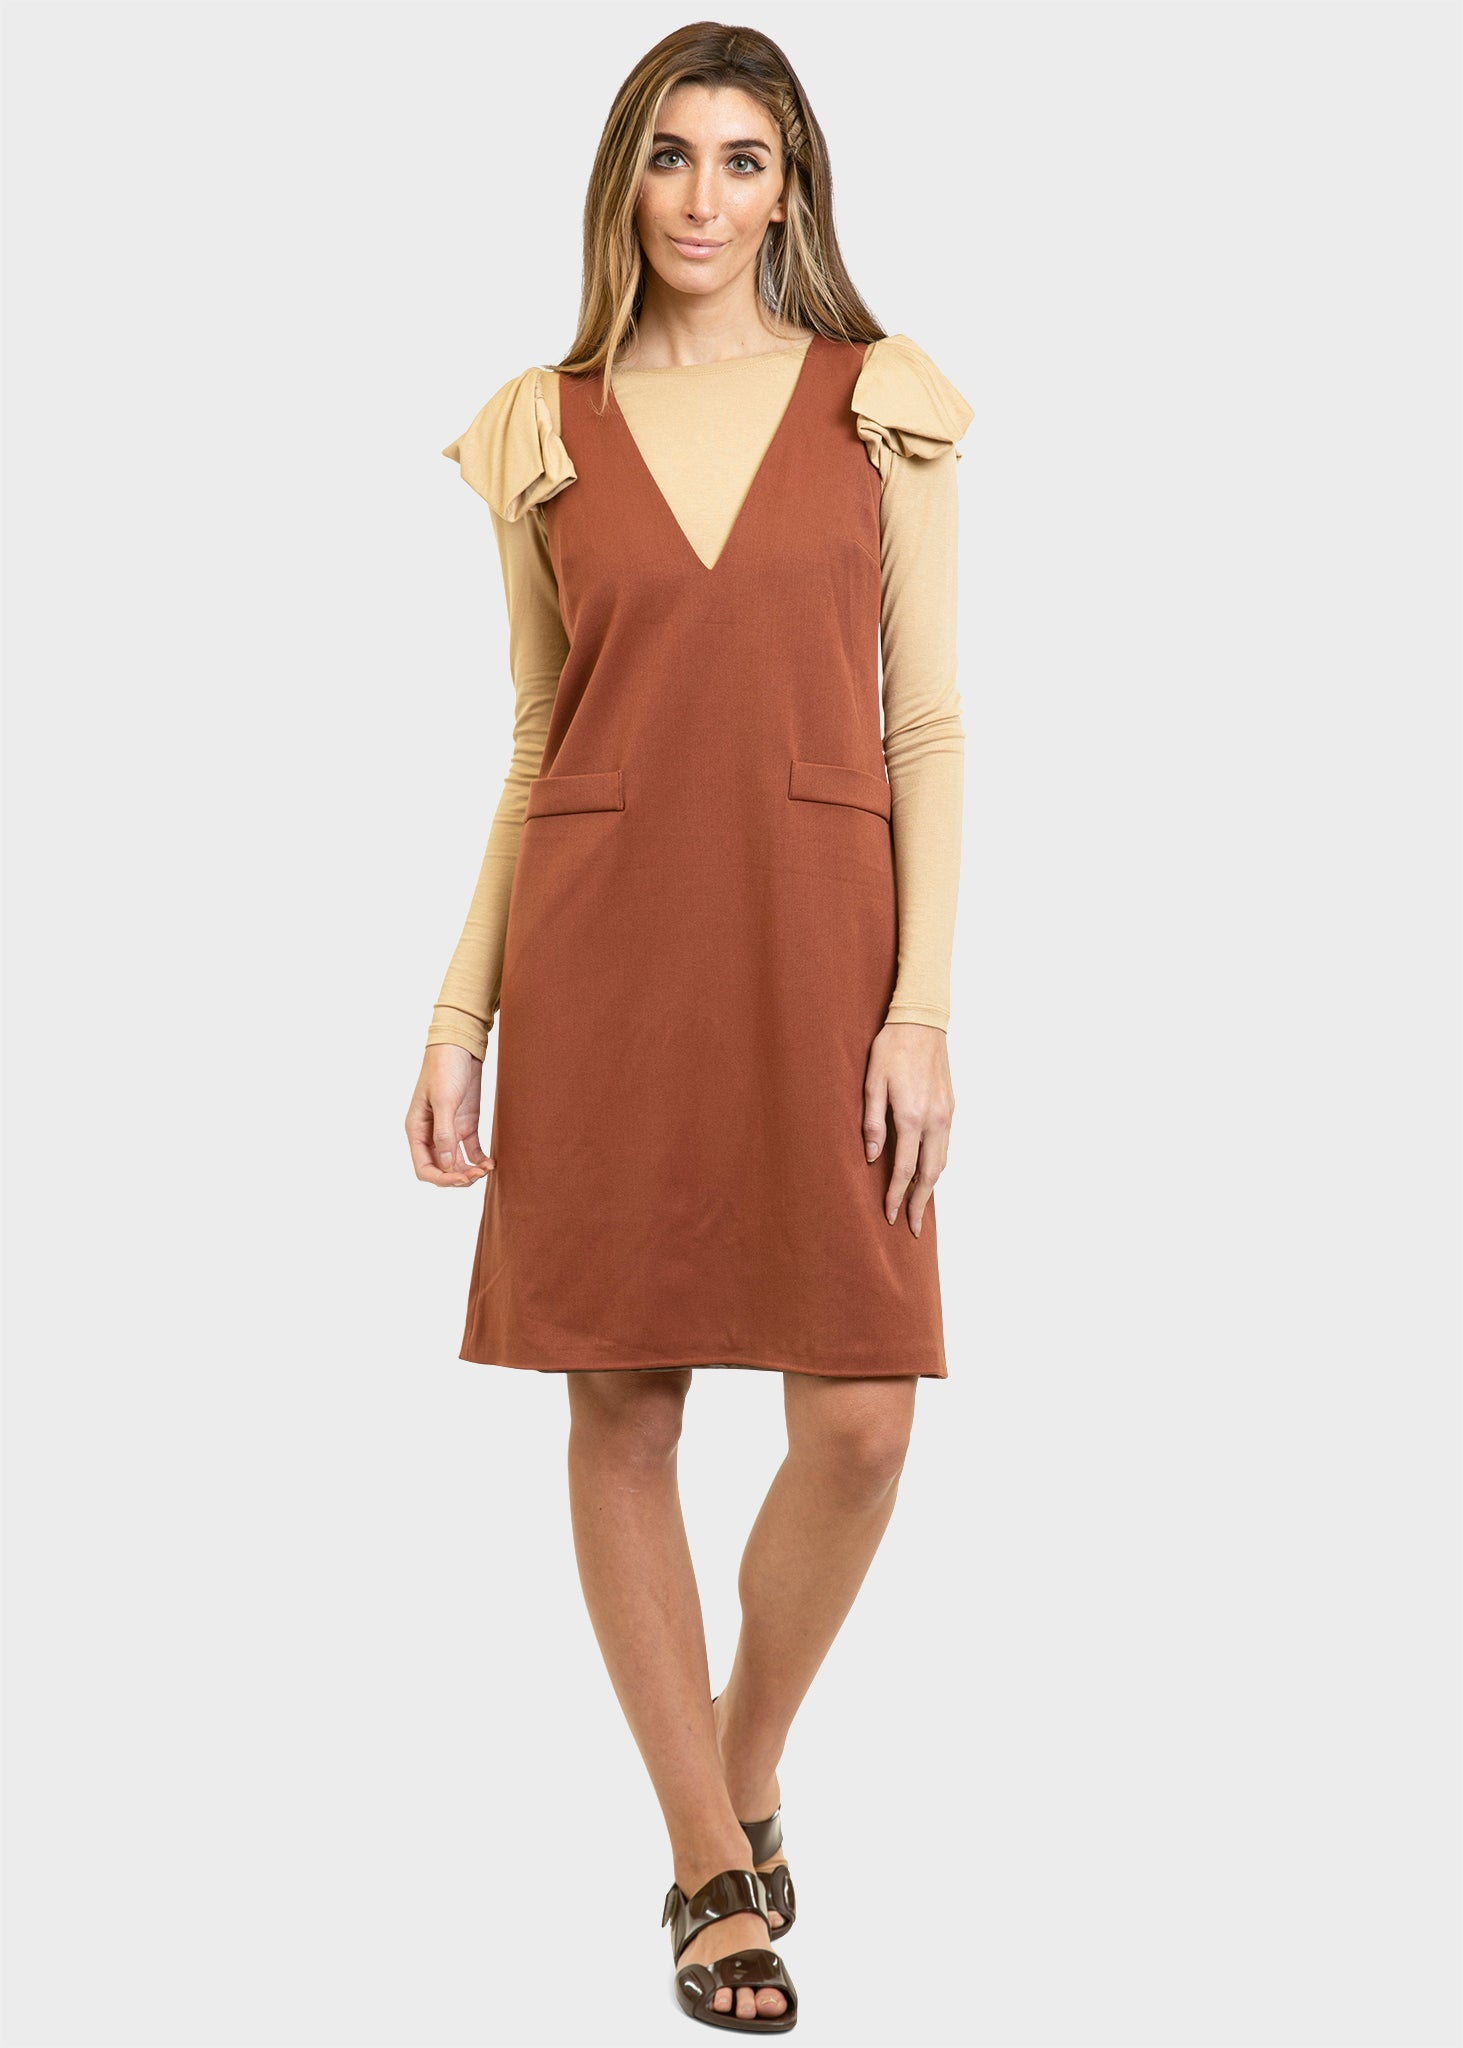 The Esther Dress Cinnamon